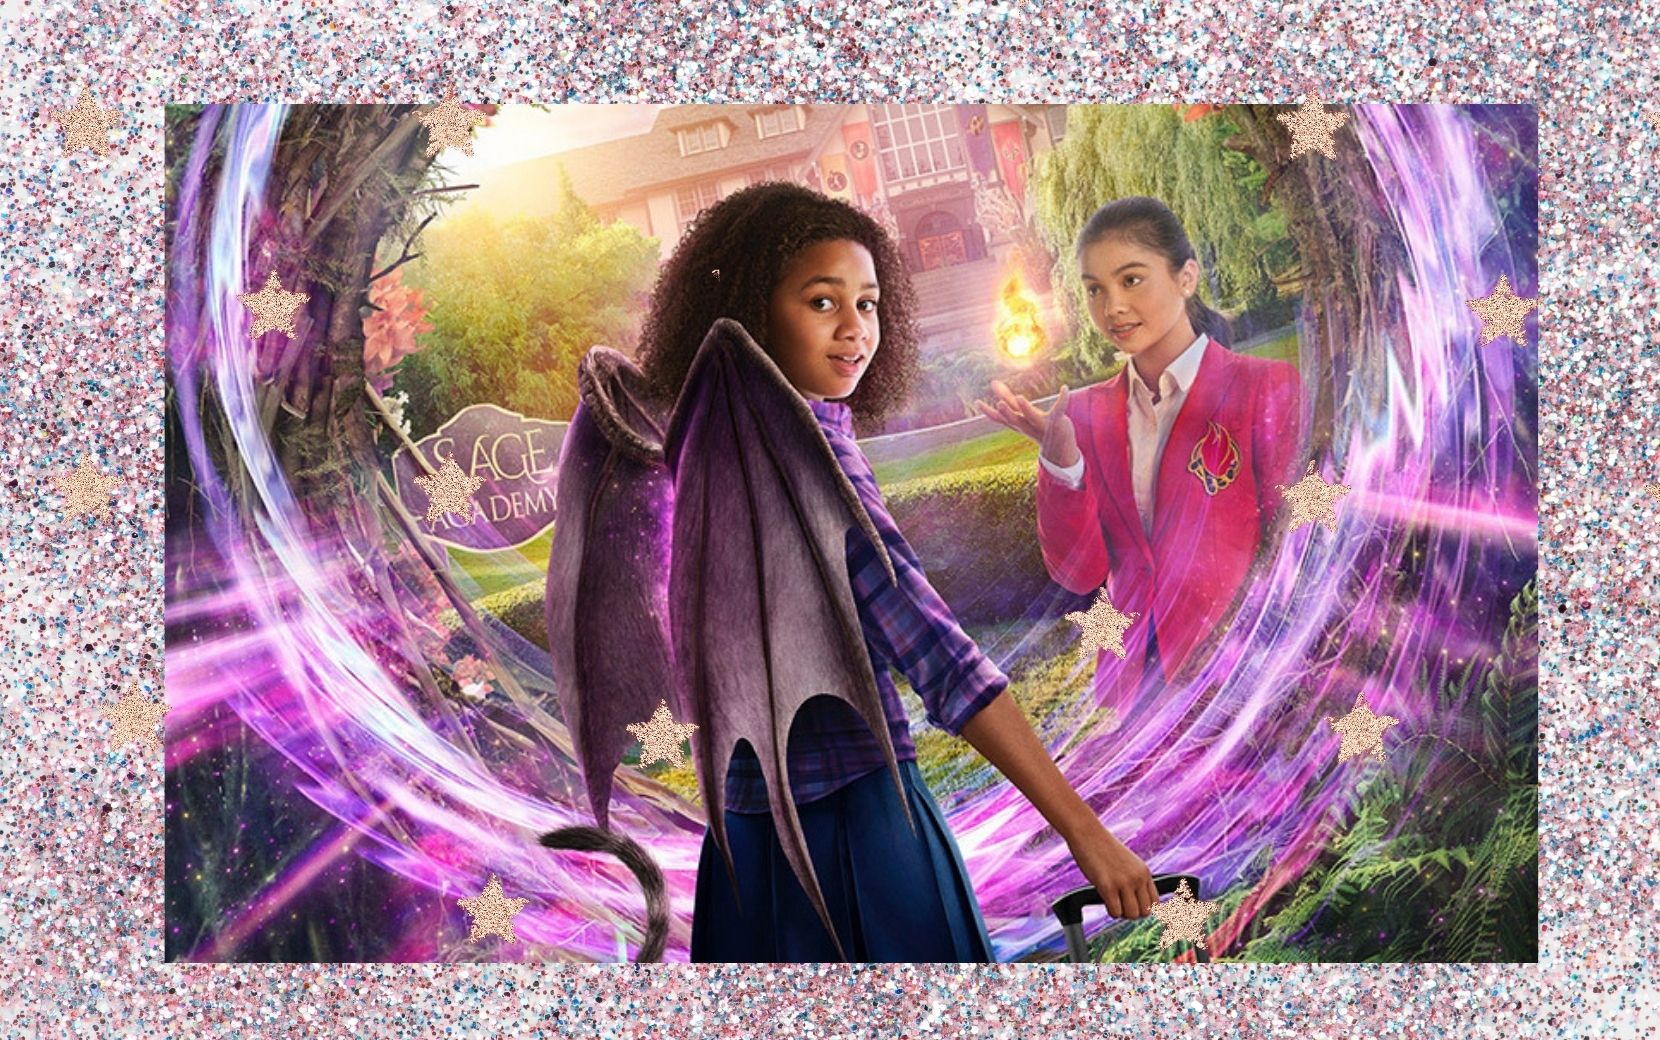 """Upside Down Magic - Escola de Magia"": Izabela Rose e Siena Agudong revelam os desafios de protagonizar a nova aposta de fantasia do Disney Channel"